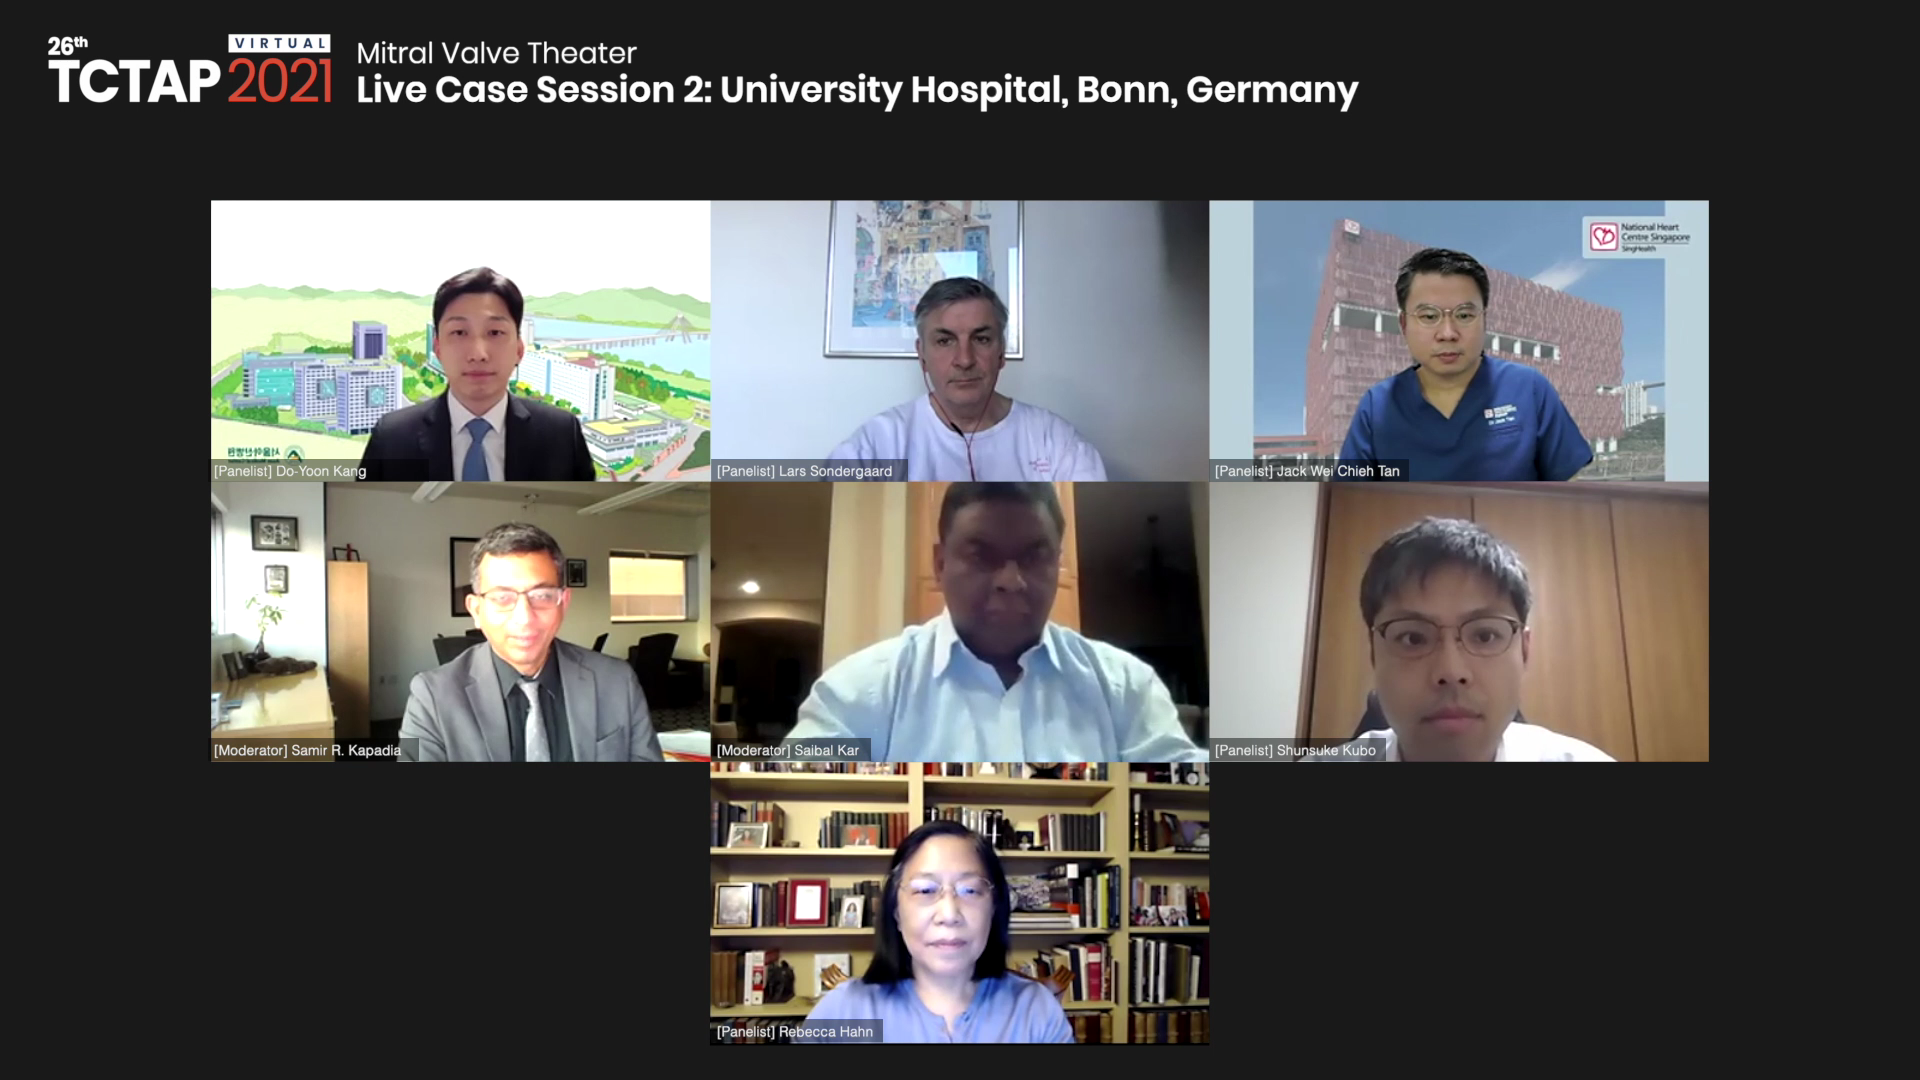 [TCTAP 2021 Virtual] Mitral Valve Theater - Live Case Session 2